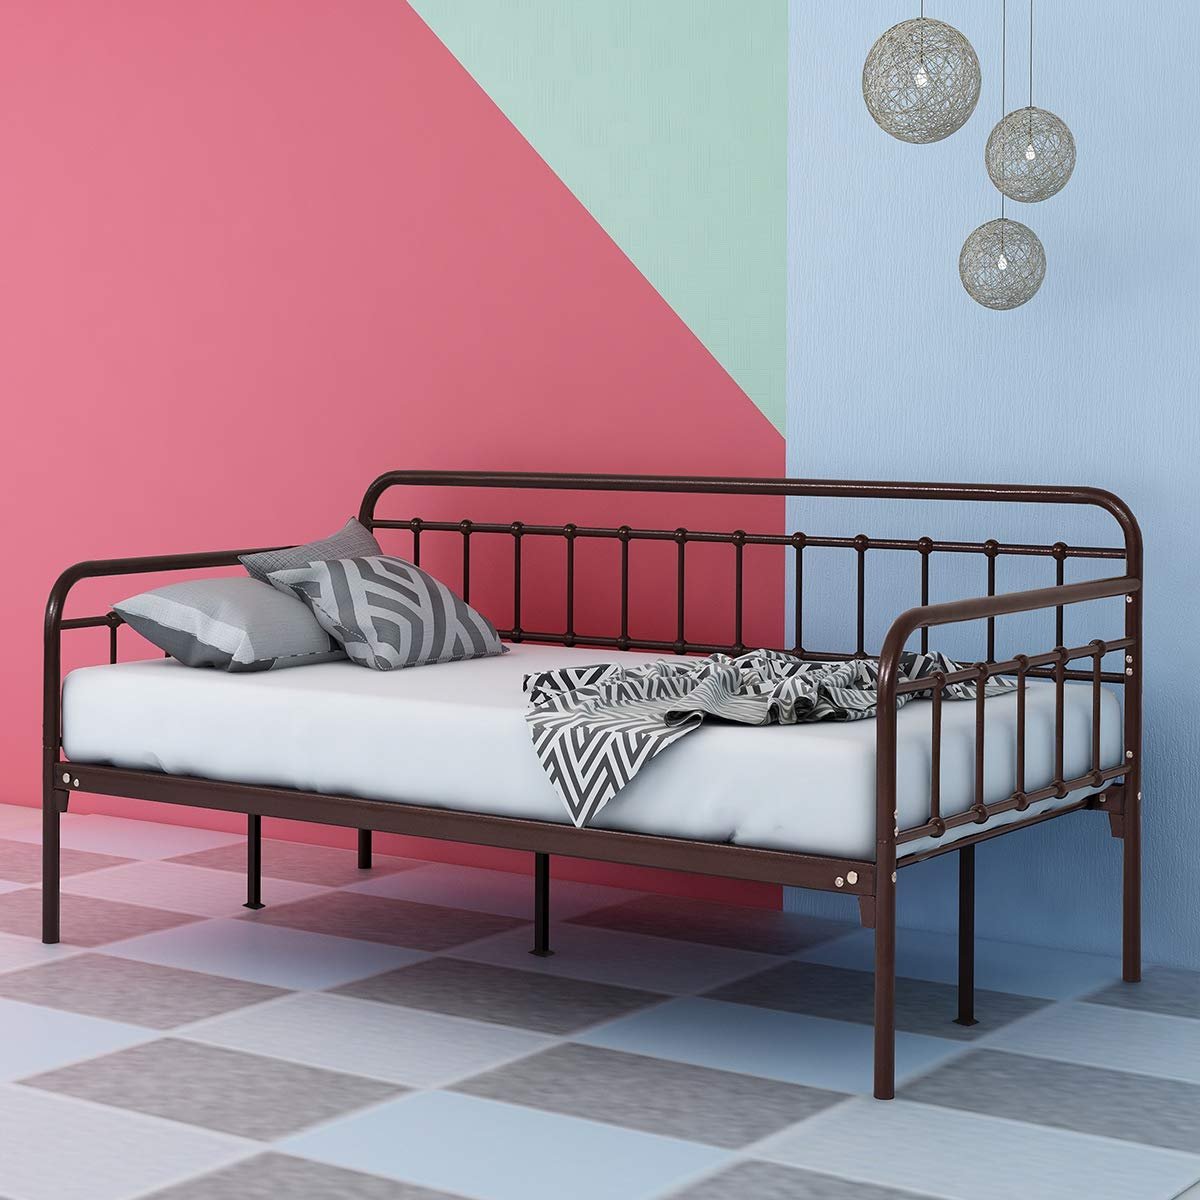 Image of: Dumee Metal Daybed Frame Firm Modern Guest Room Sofa Multifunction Muebles De Dormitorio Stability Bed Home Furniture Bedroom Aliexpress